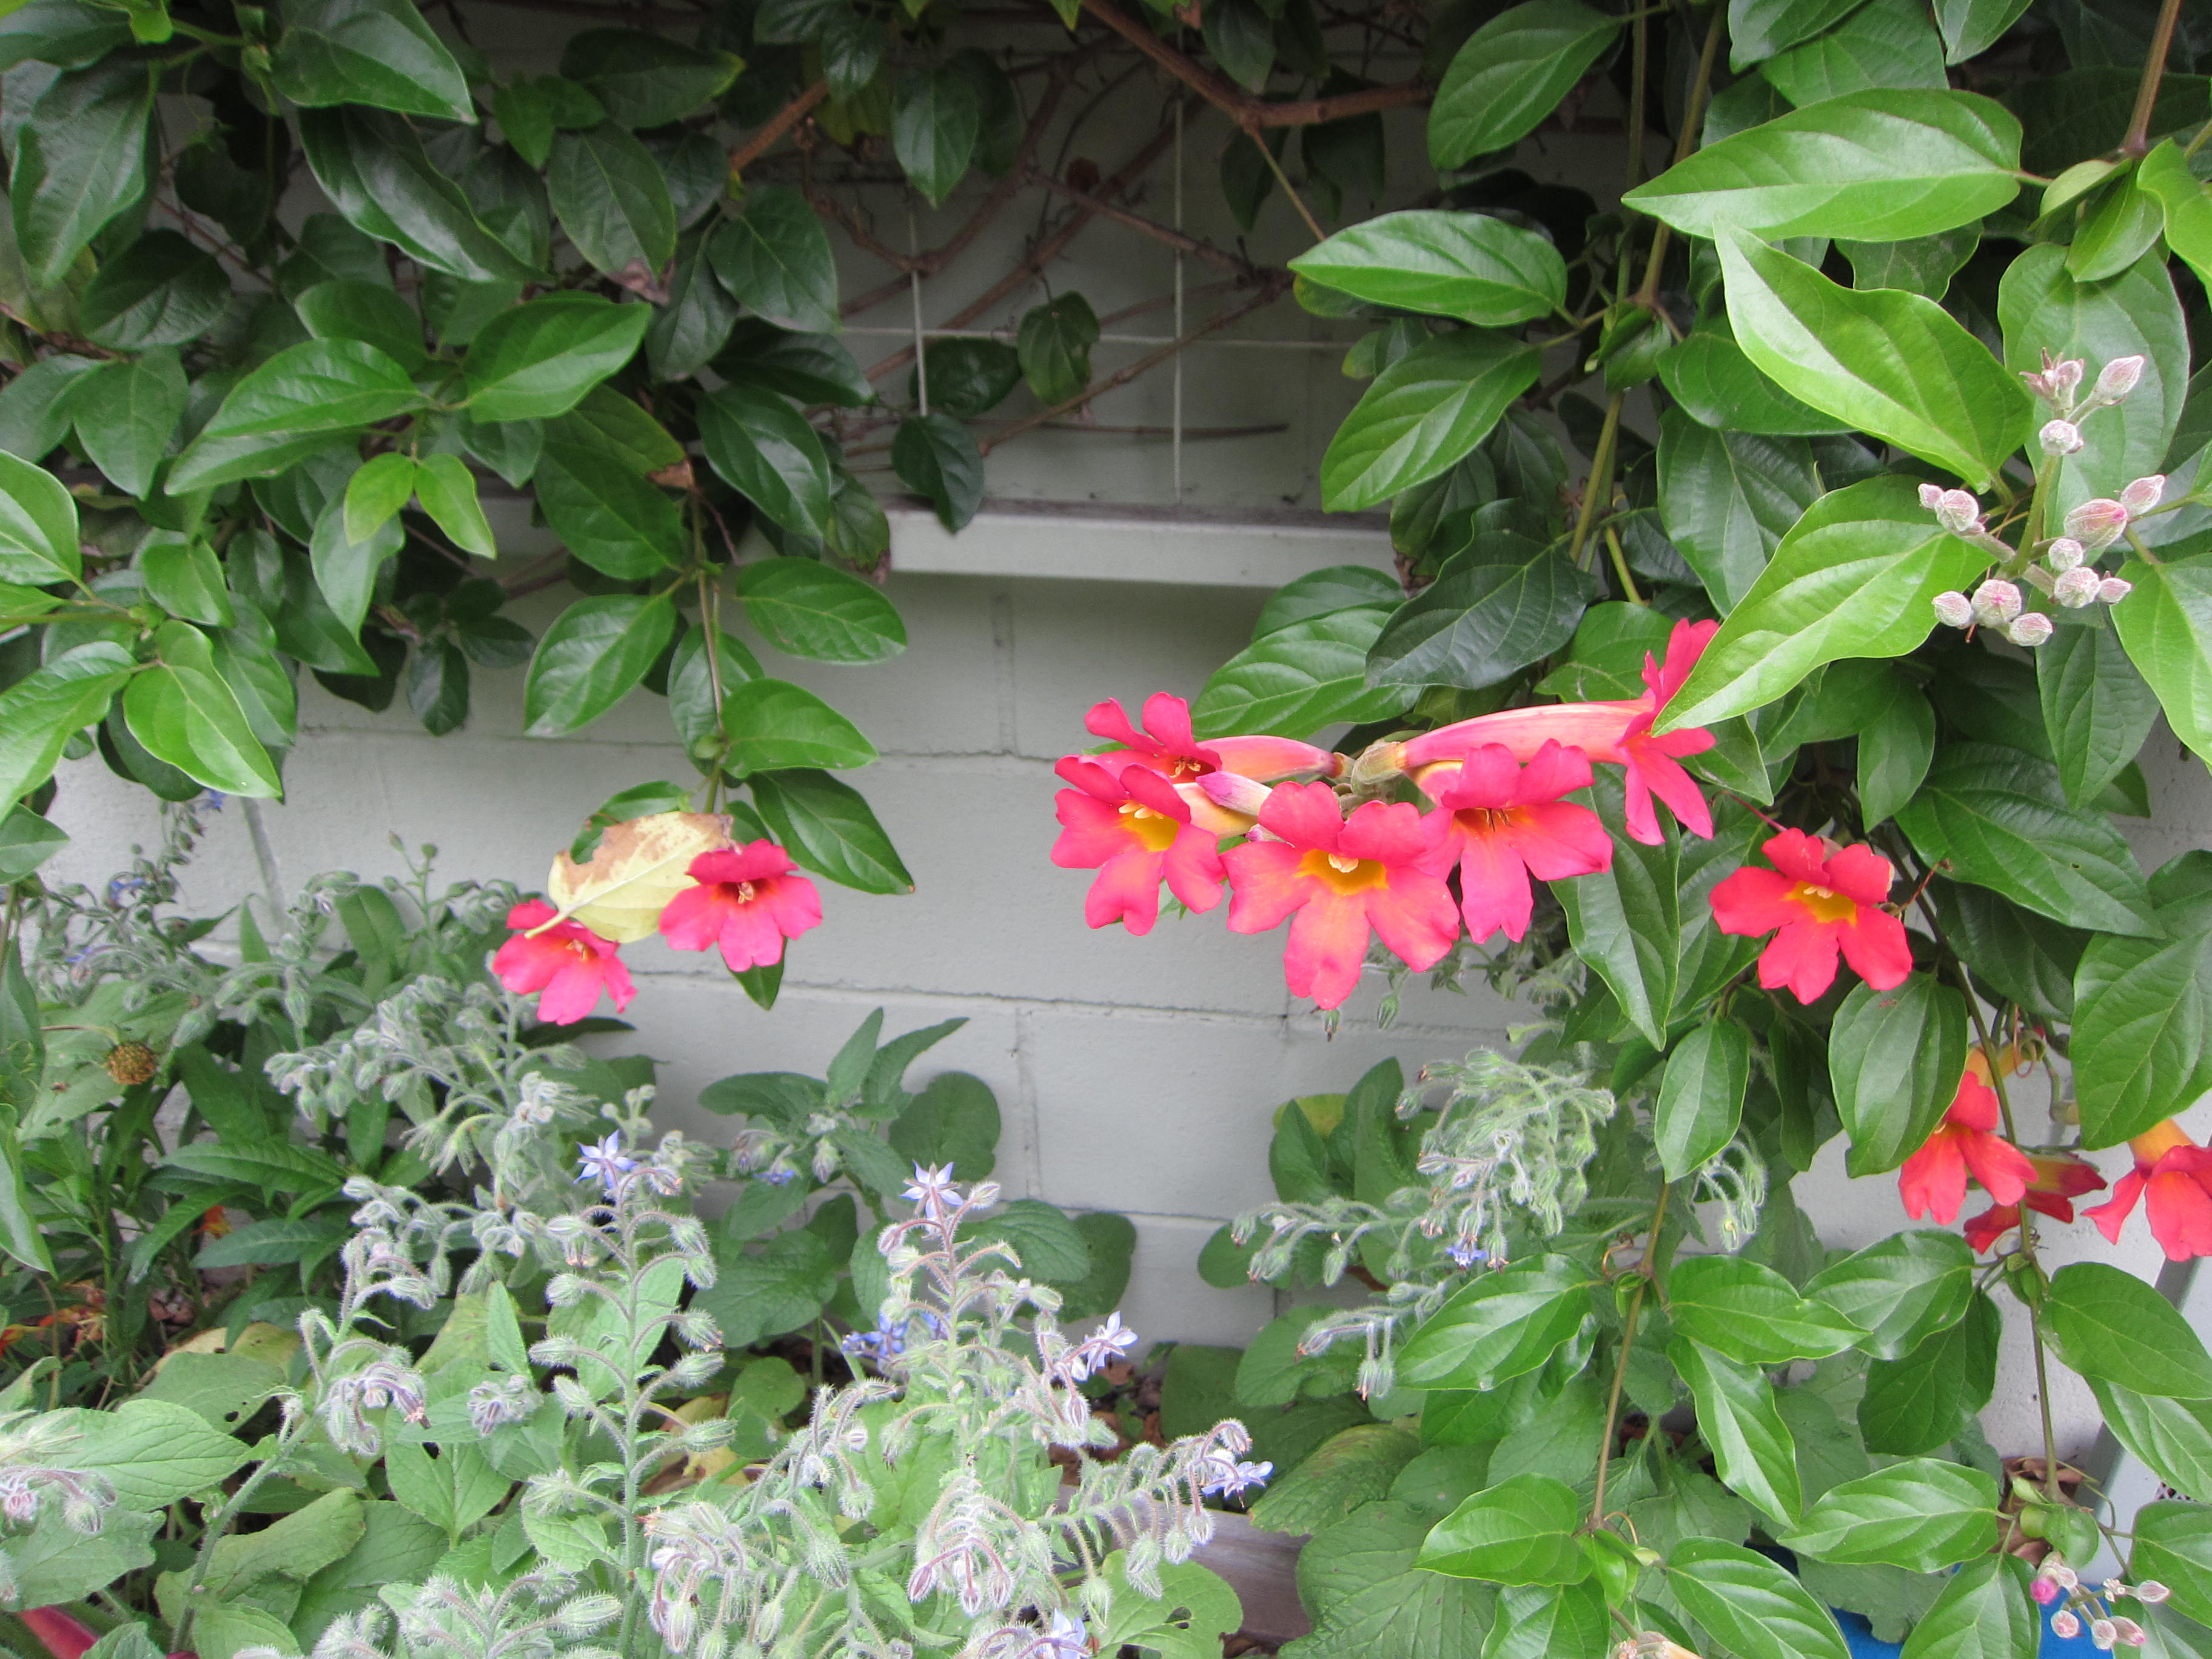 Trumpet vine attracts hummingbirds and borage satisfies bees. All for the greater good, and our enjoyment.